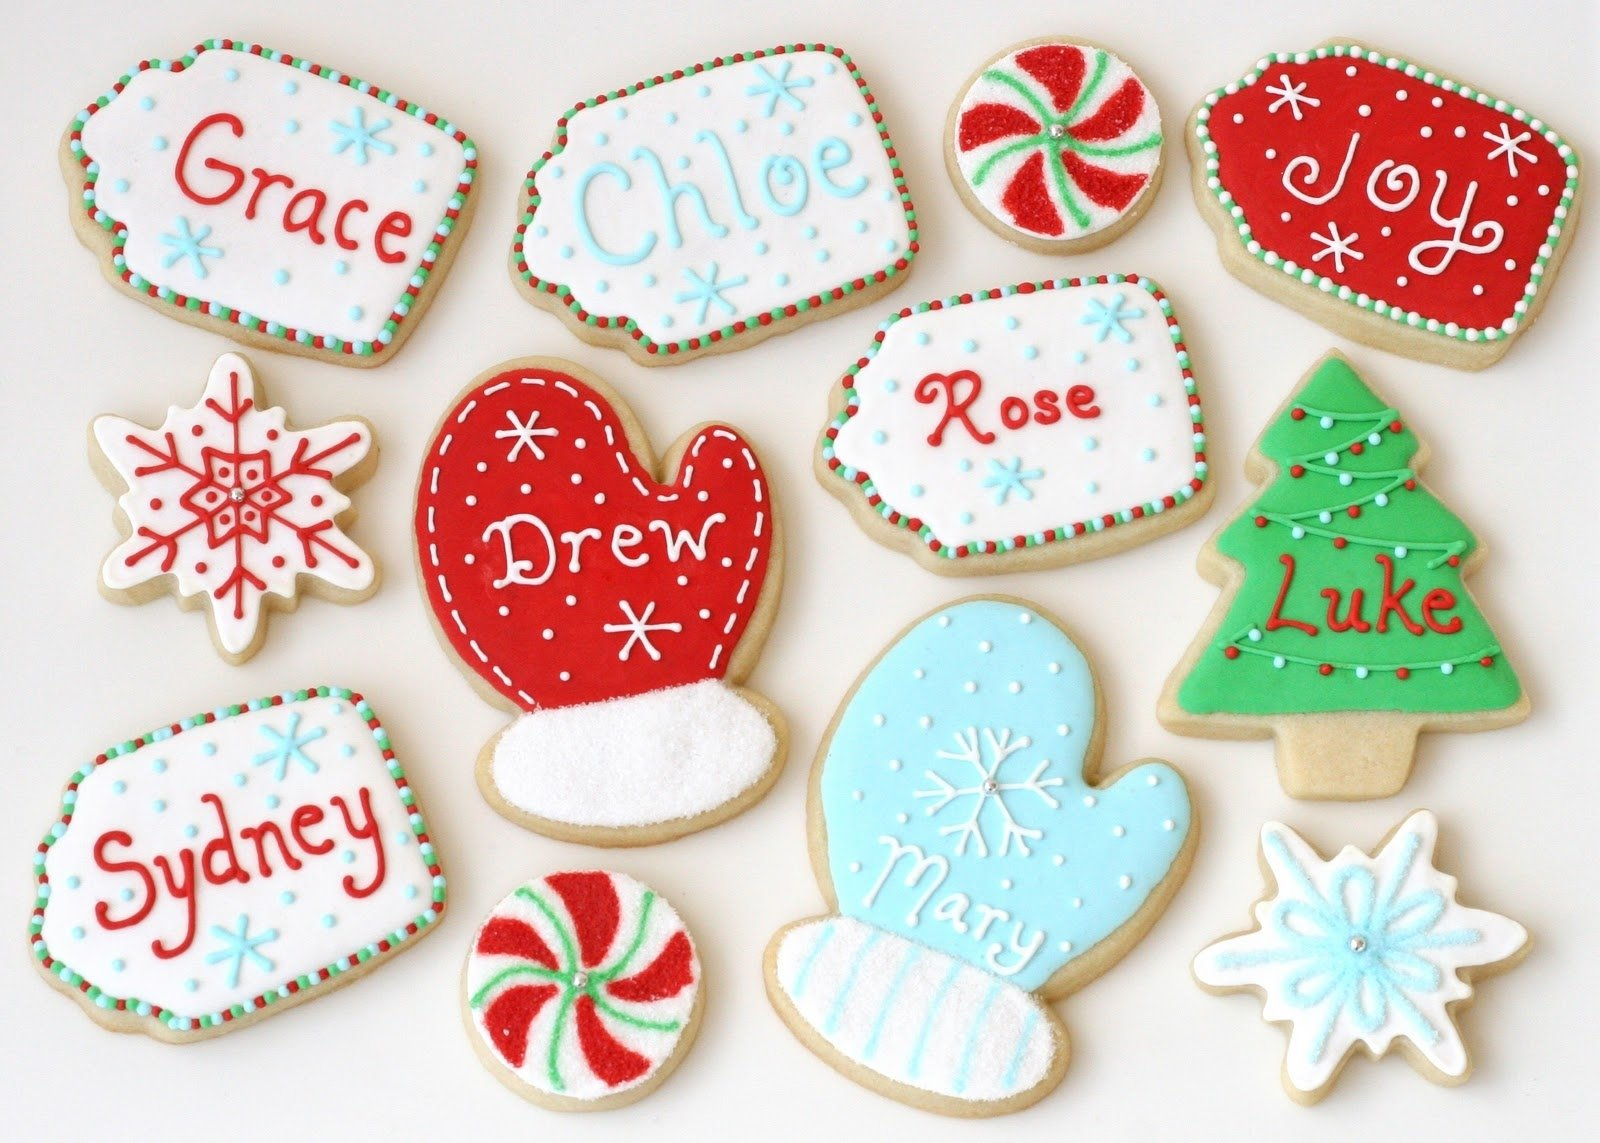 10 Ideal Christmas Sugar Cookie Decorating Ideas christmas cookie decorating ideas fun cookie decorating ideas  sc 1 st  Unique Ideas 2018 & 10 Ideal Christmas Sugar Cookie Decorating Ideas